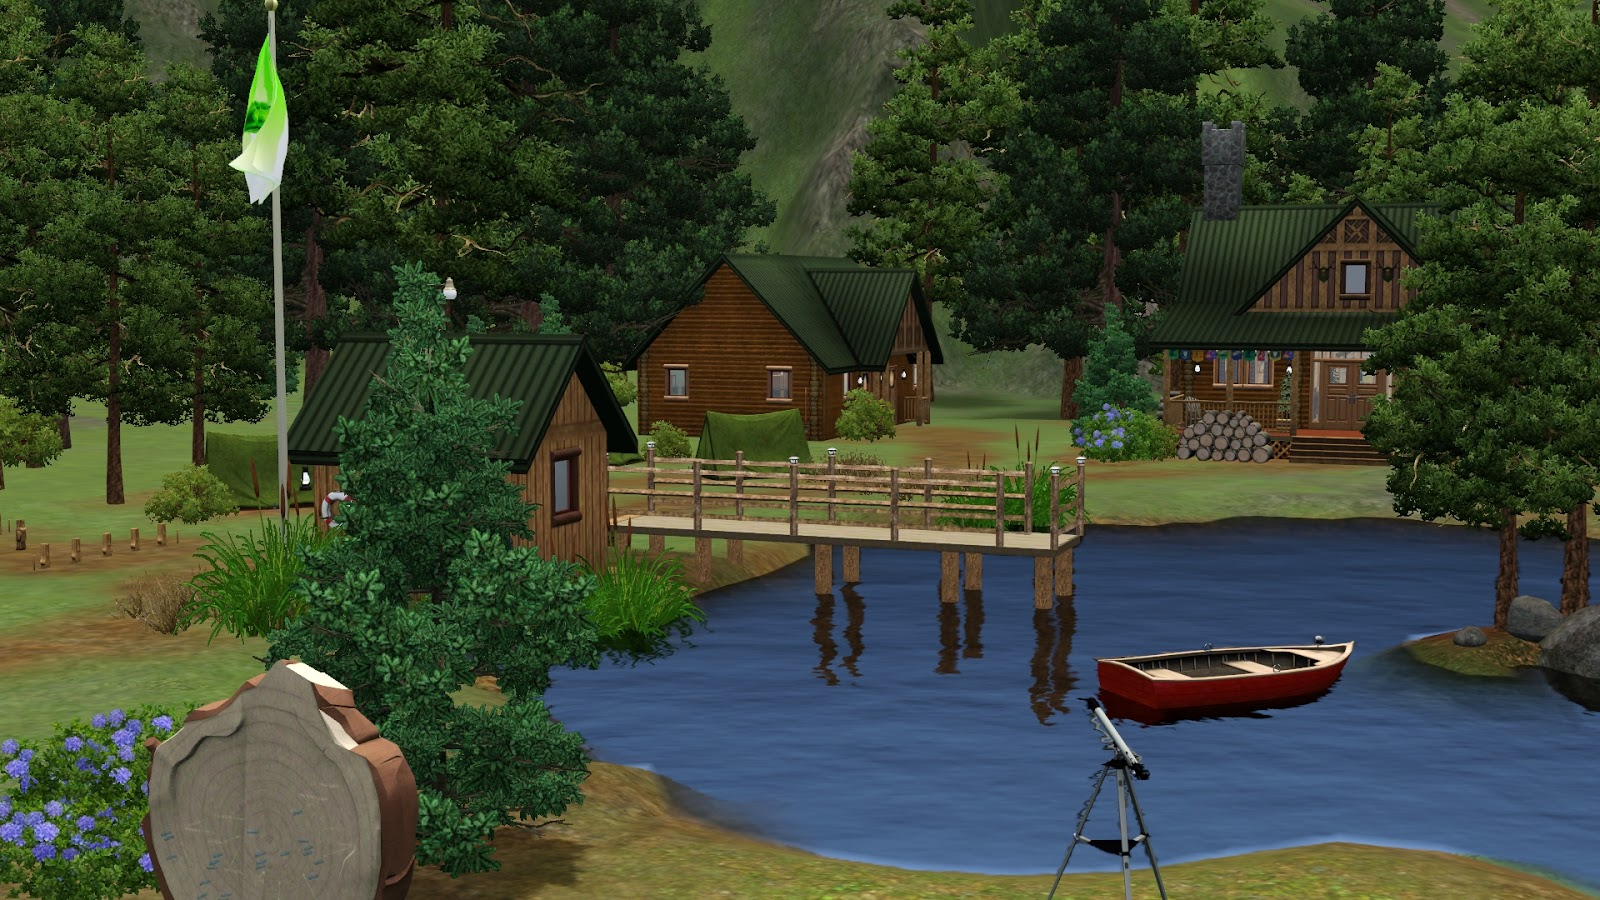 Send Your Sims To Summer Camp At Camp Plumbob!